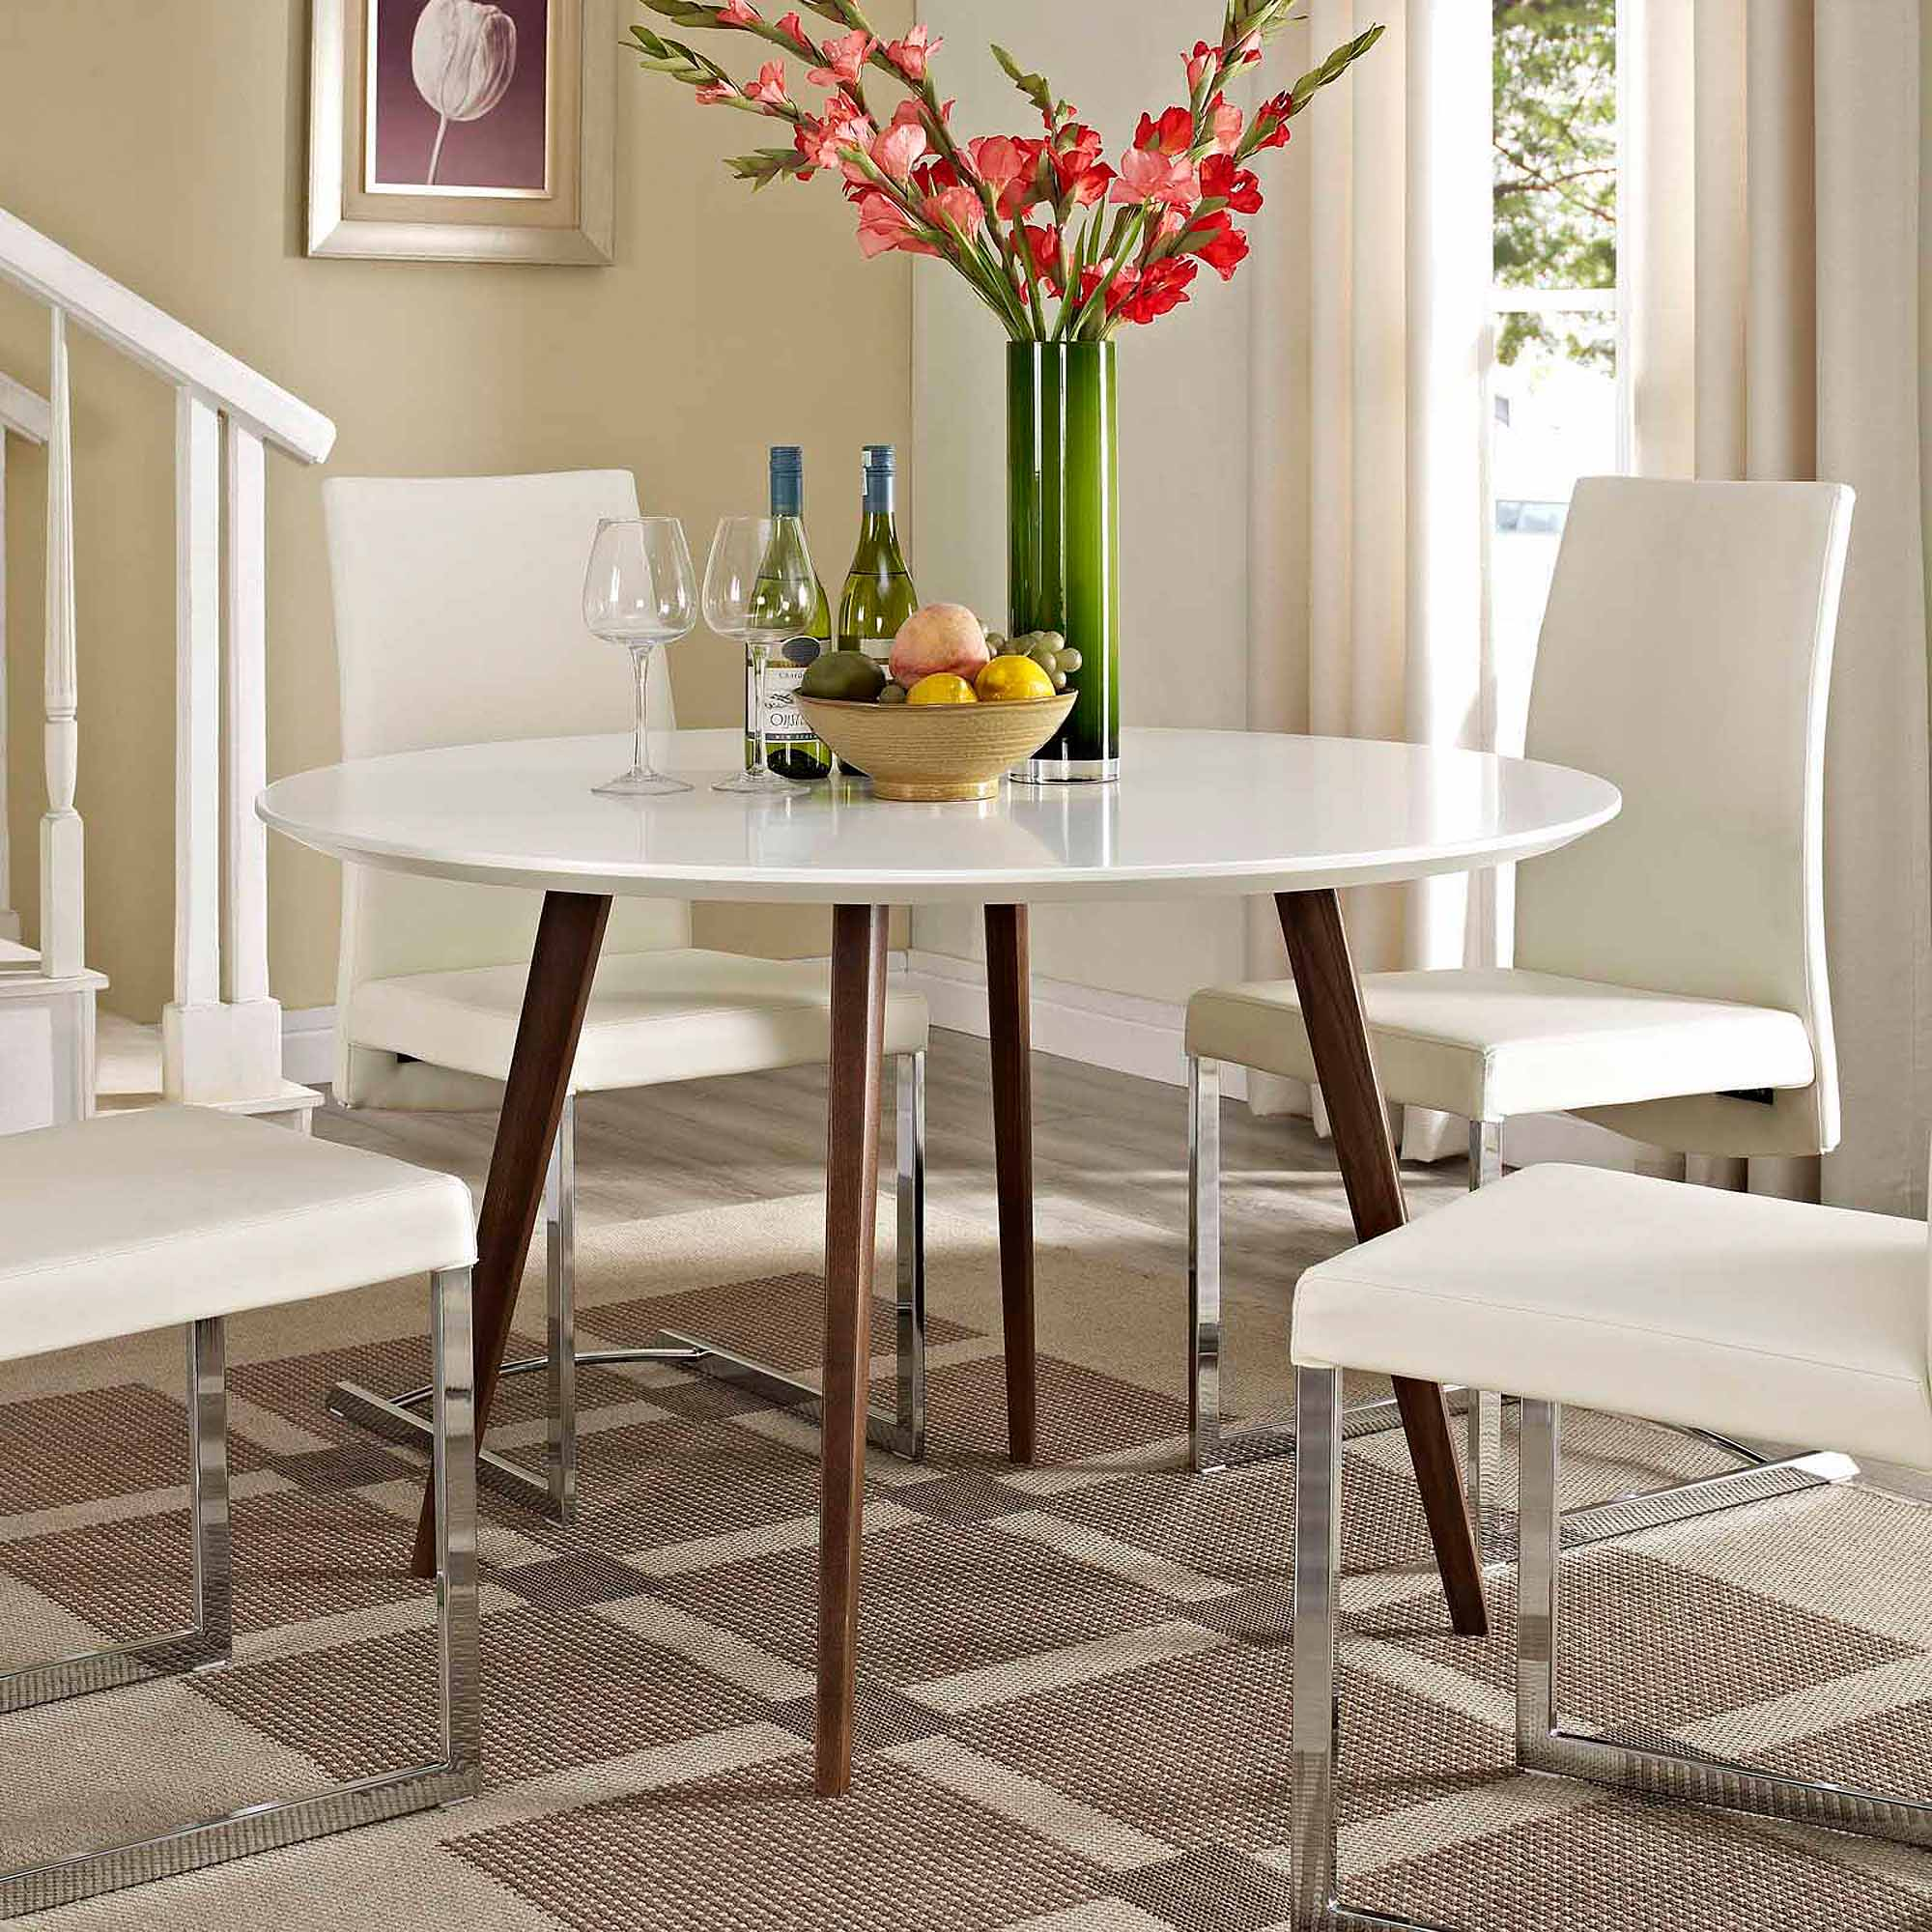 Modway Canvas Round Dining Table with Wood Legs in White by Modway